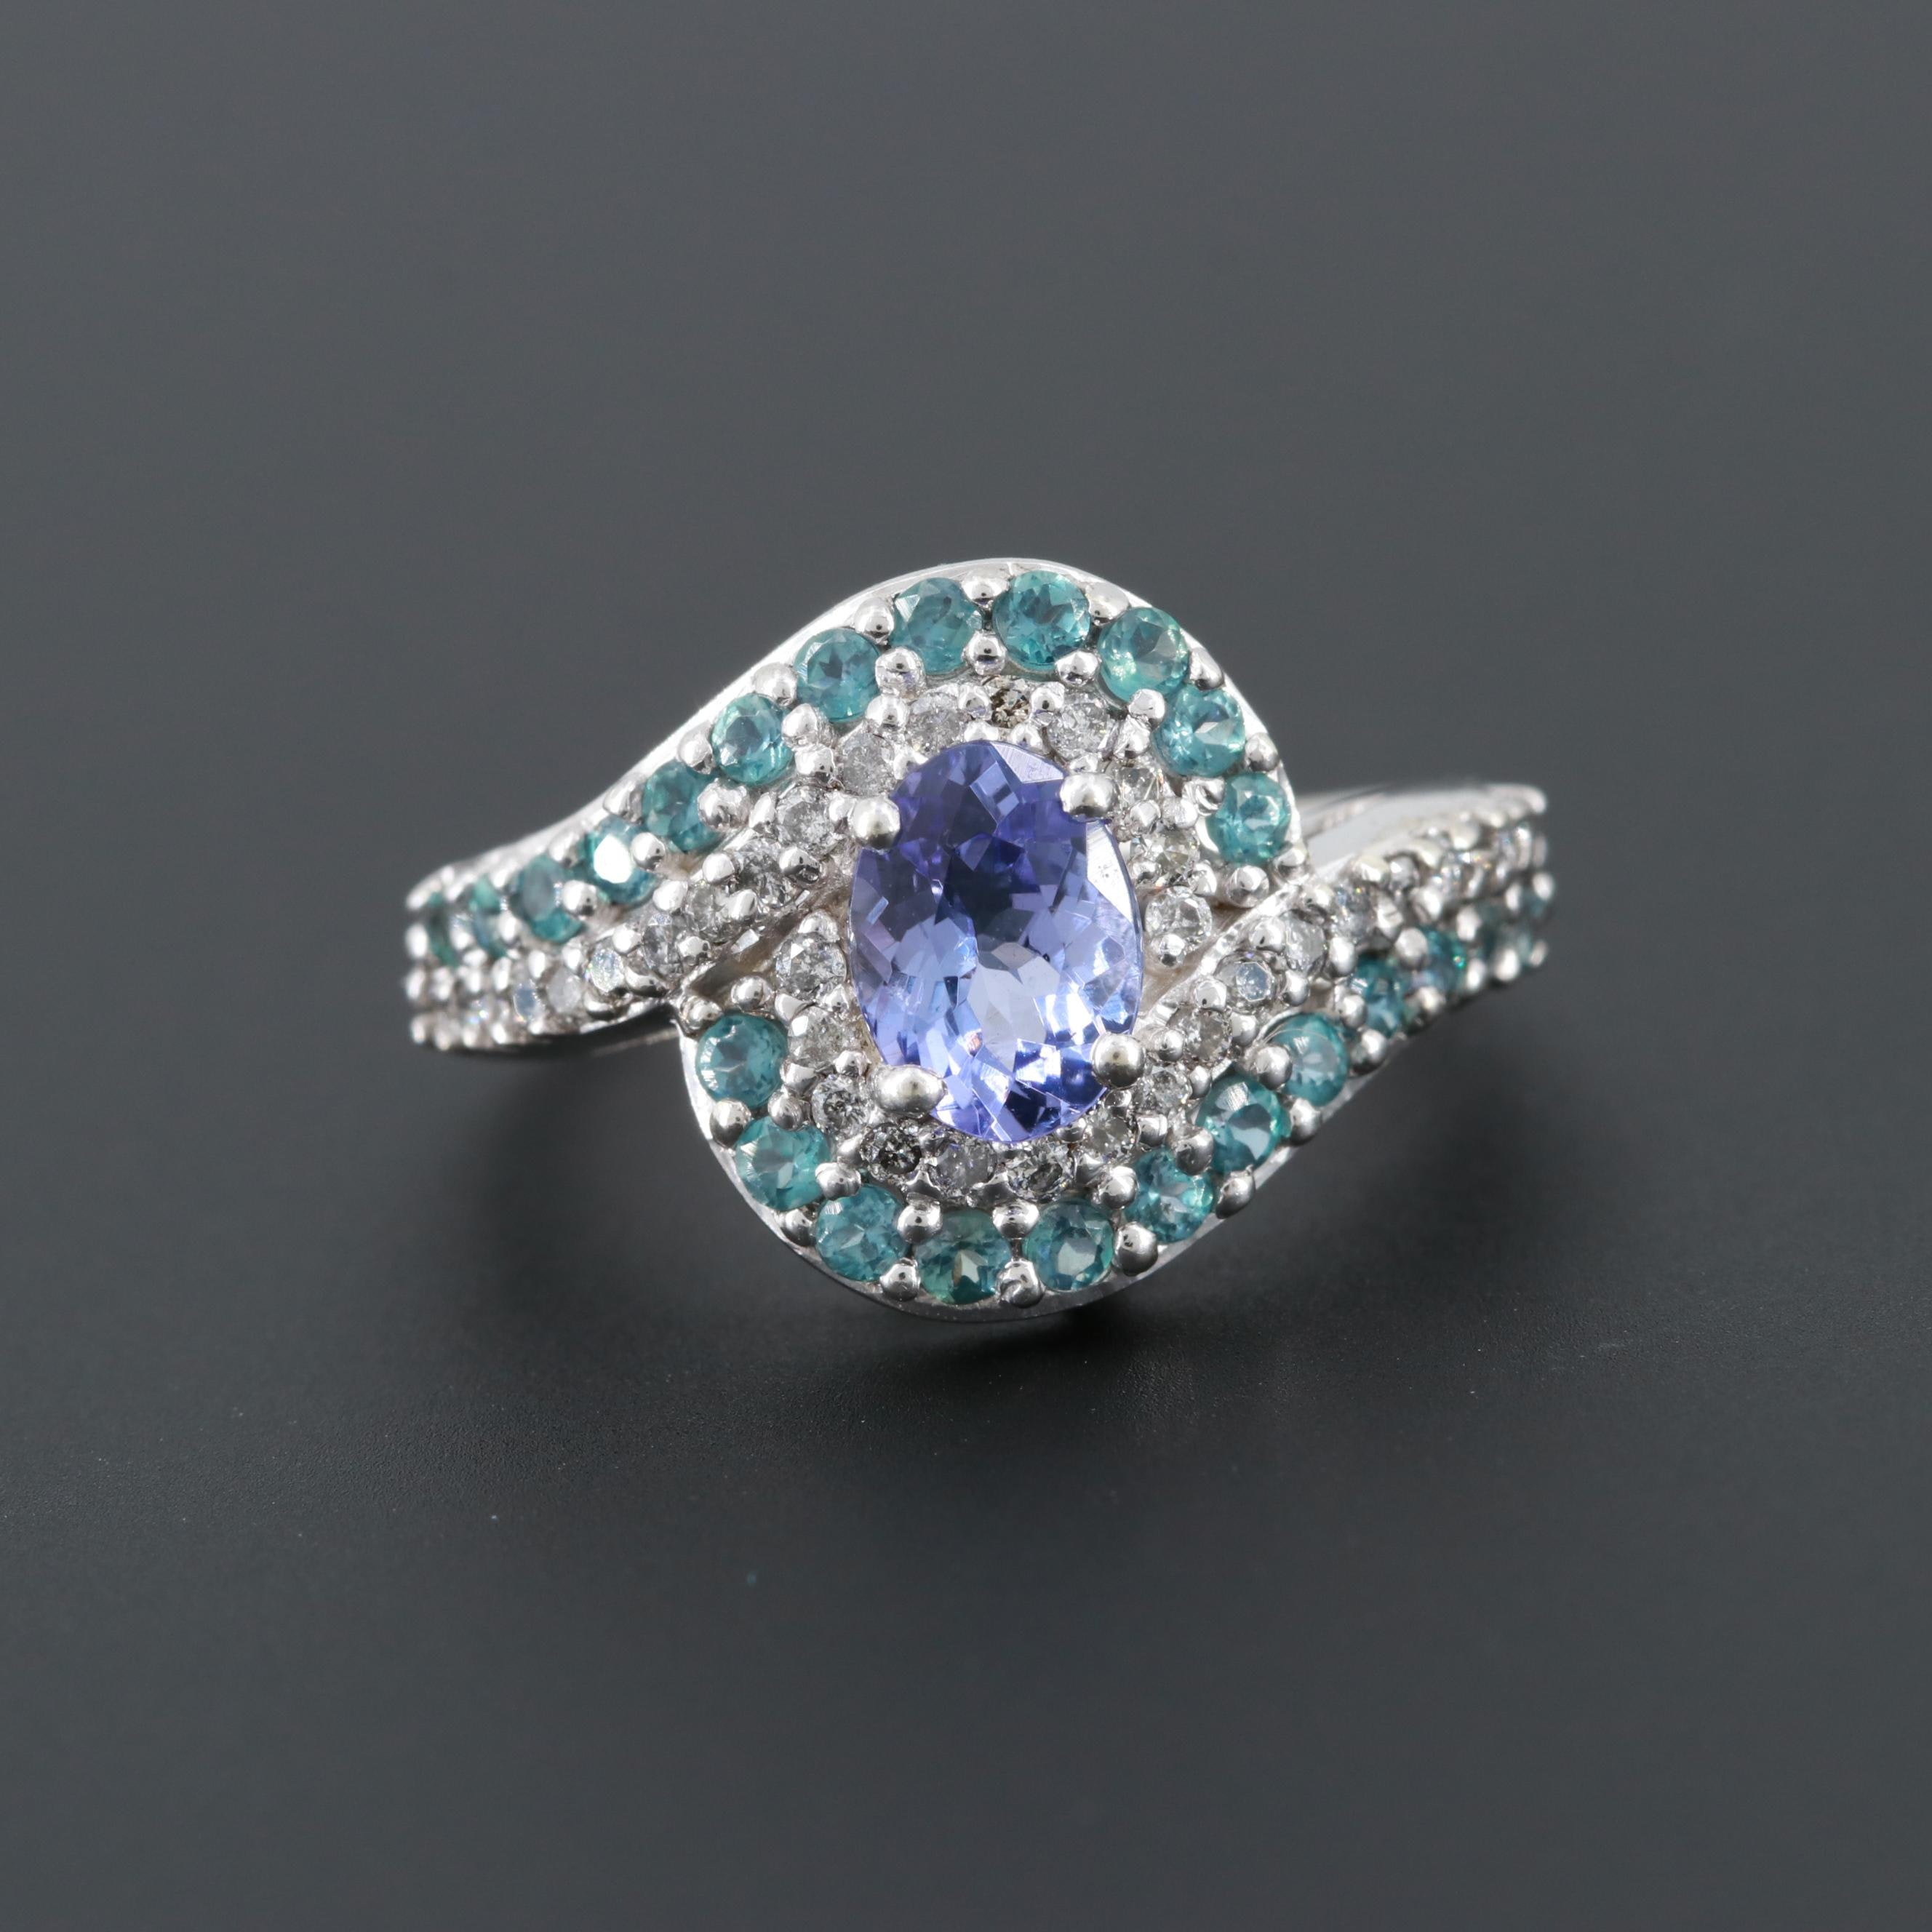 10K White Gold Tanzanite, Diamond and Alexandrite Ring